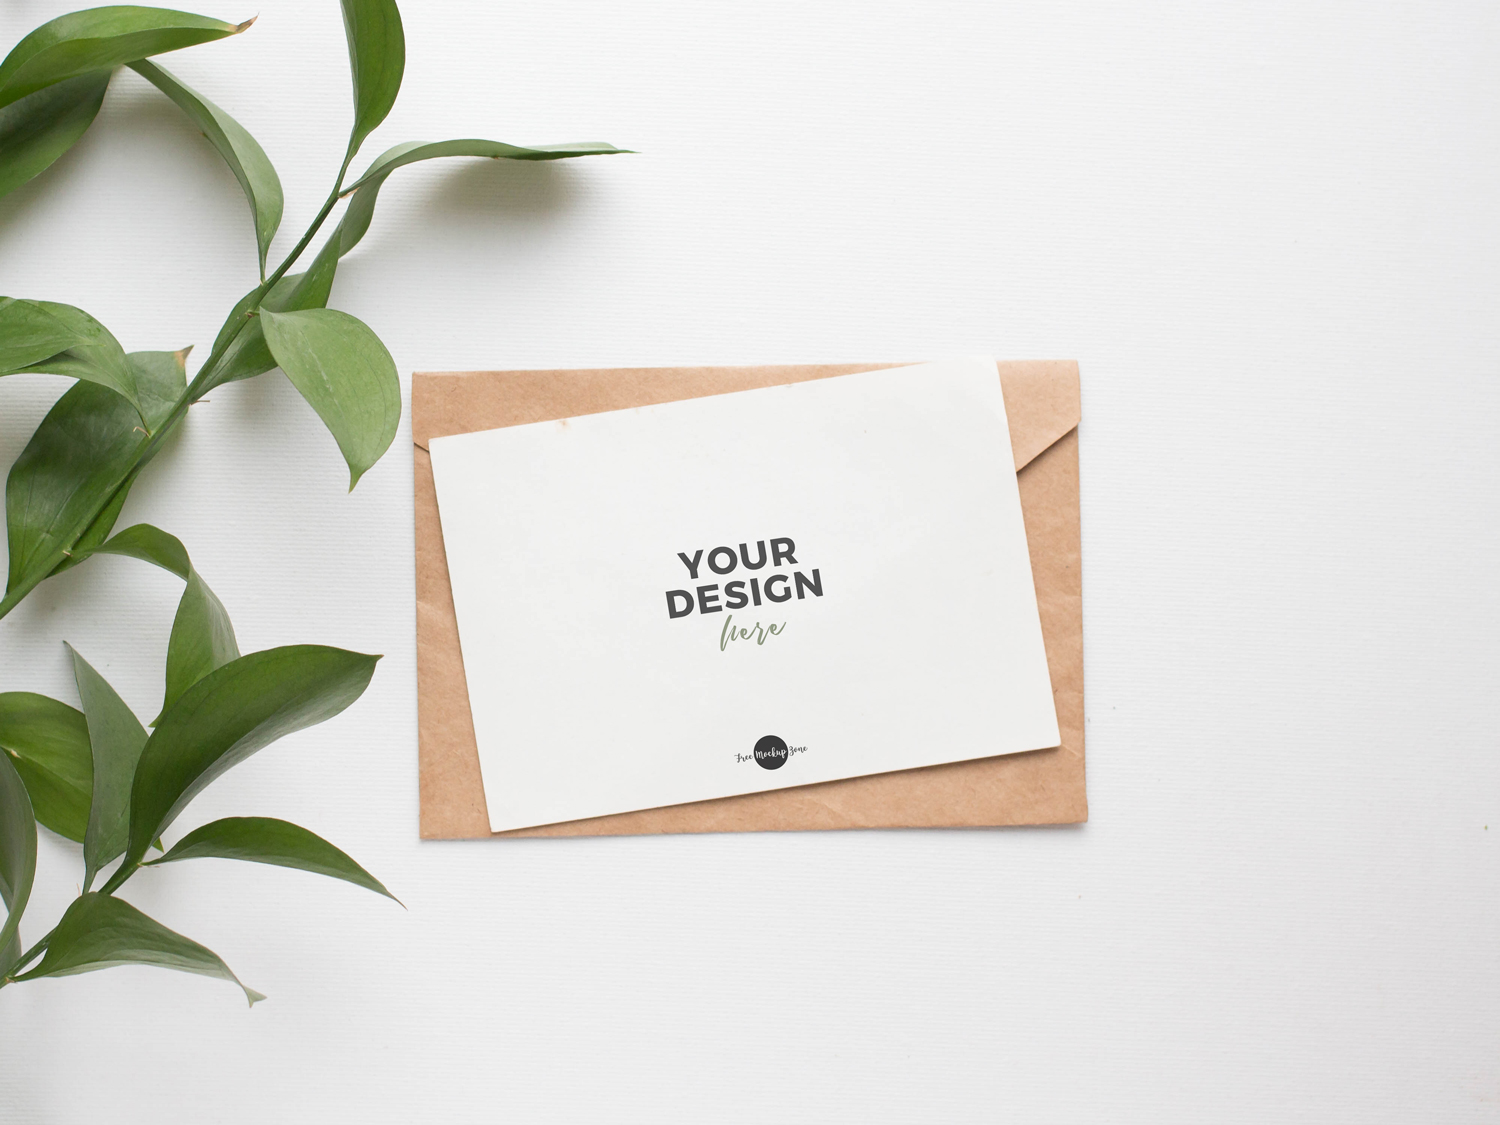 Free-Elegant-PSD-Invitation-Card-Mockup